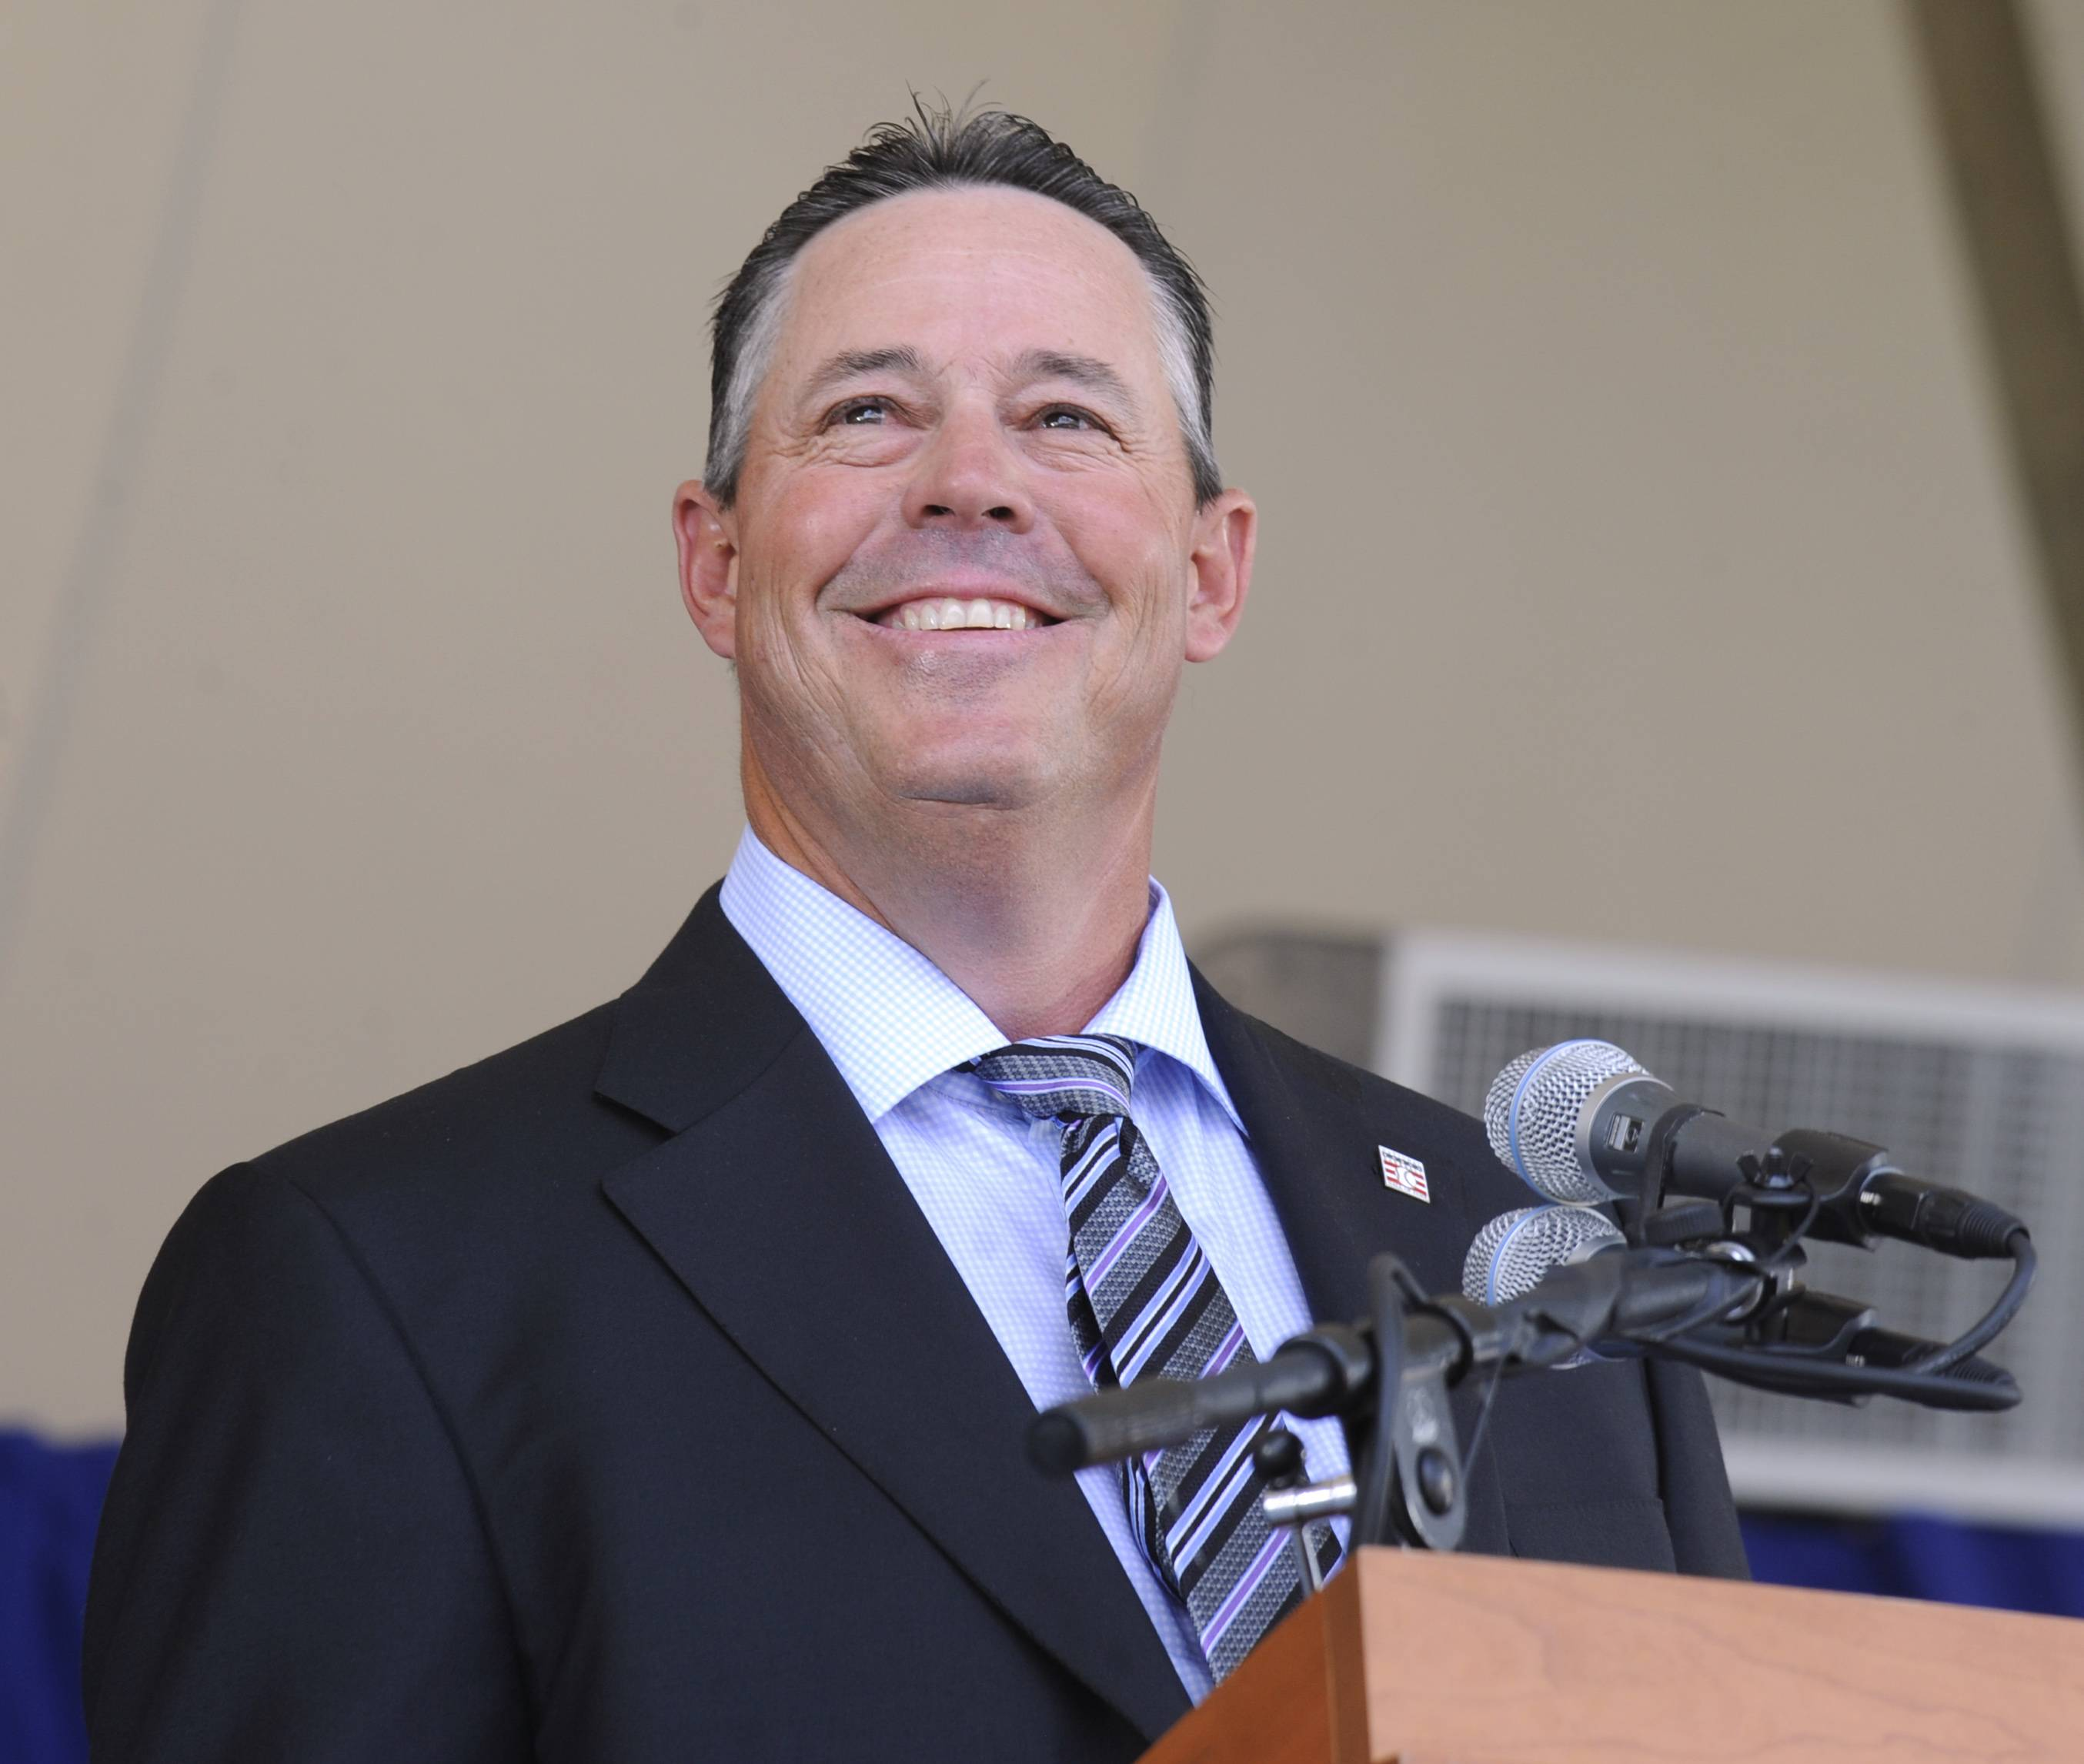 National Baseball Hall of Fame inductee Greg Maddux speaks during Sunday's induction ceremony at the Clark Sports Center in Cooperstown, N.Y.